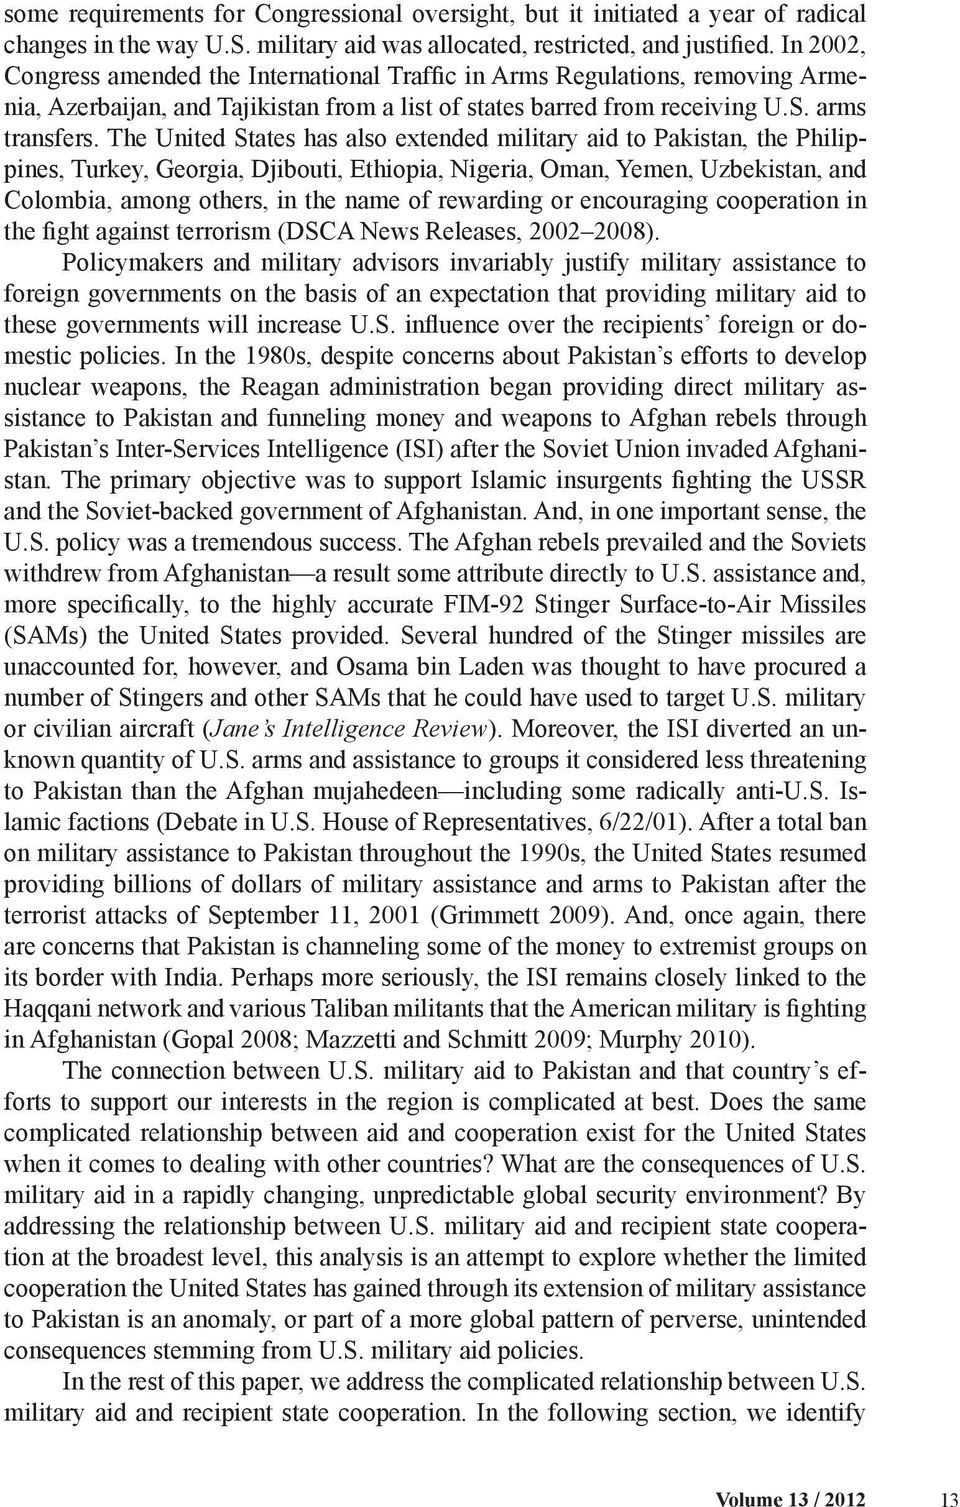 The United States has also extended military aid to Pakistan, the Philippines, Turkey, Georgia, Djibouti, Ethiopia, Nigeria, Oman, Yemen, Uzbekistan, and Colombia, among others, in the name of